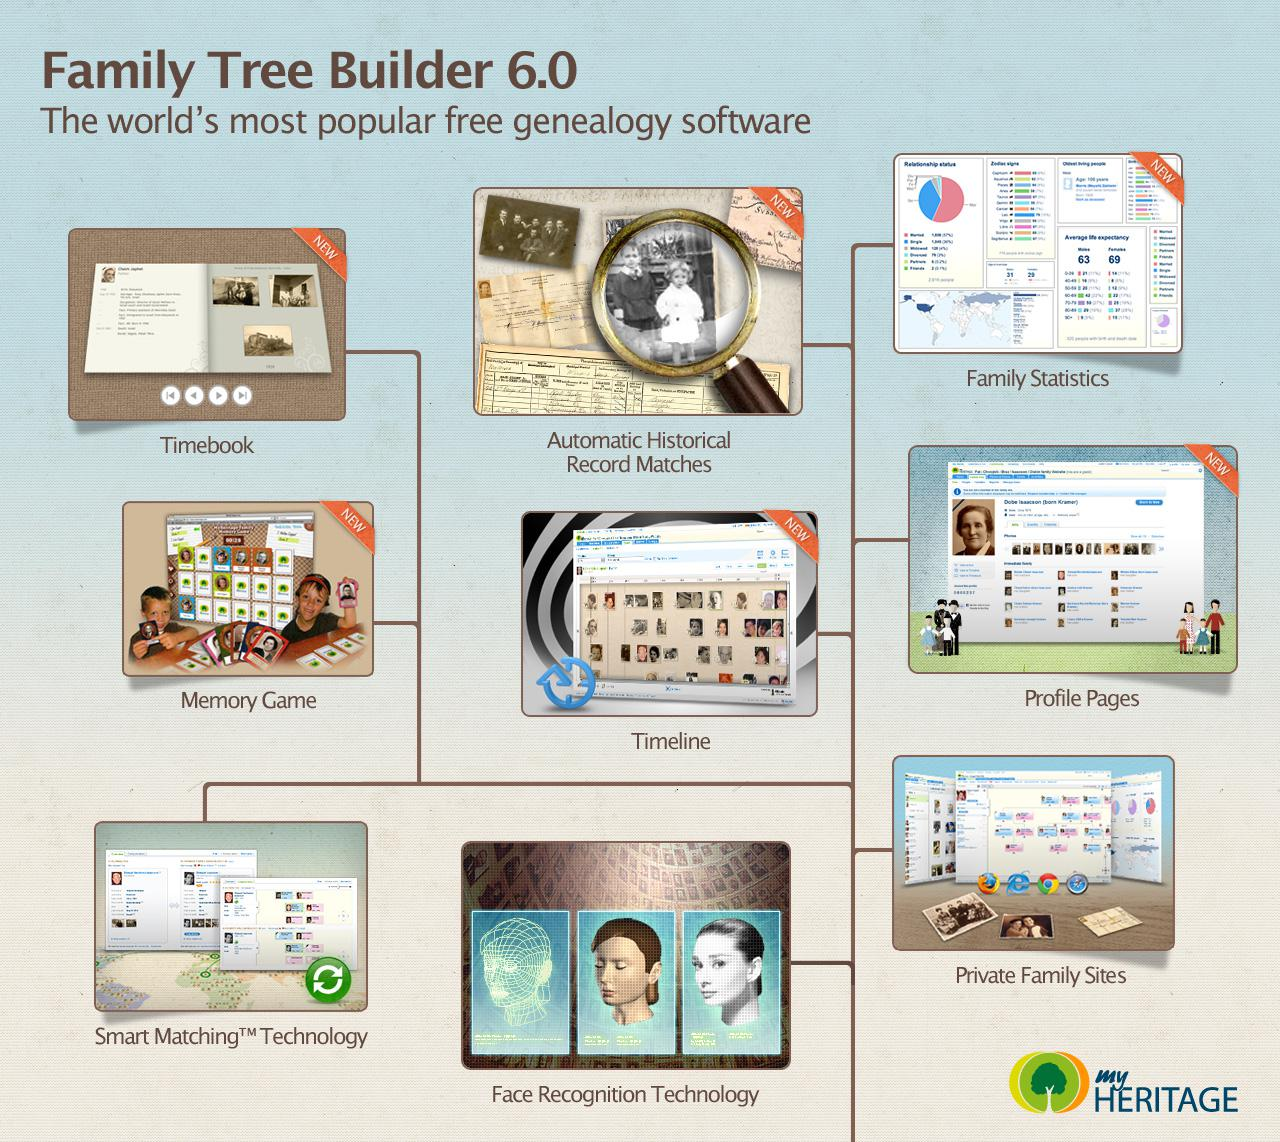 New features of Family Tree Builder 6.0 (click to enlarge)